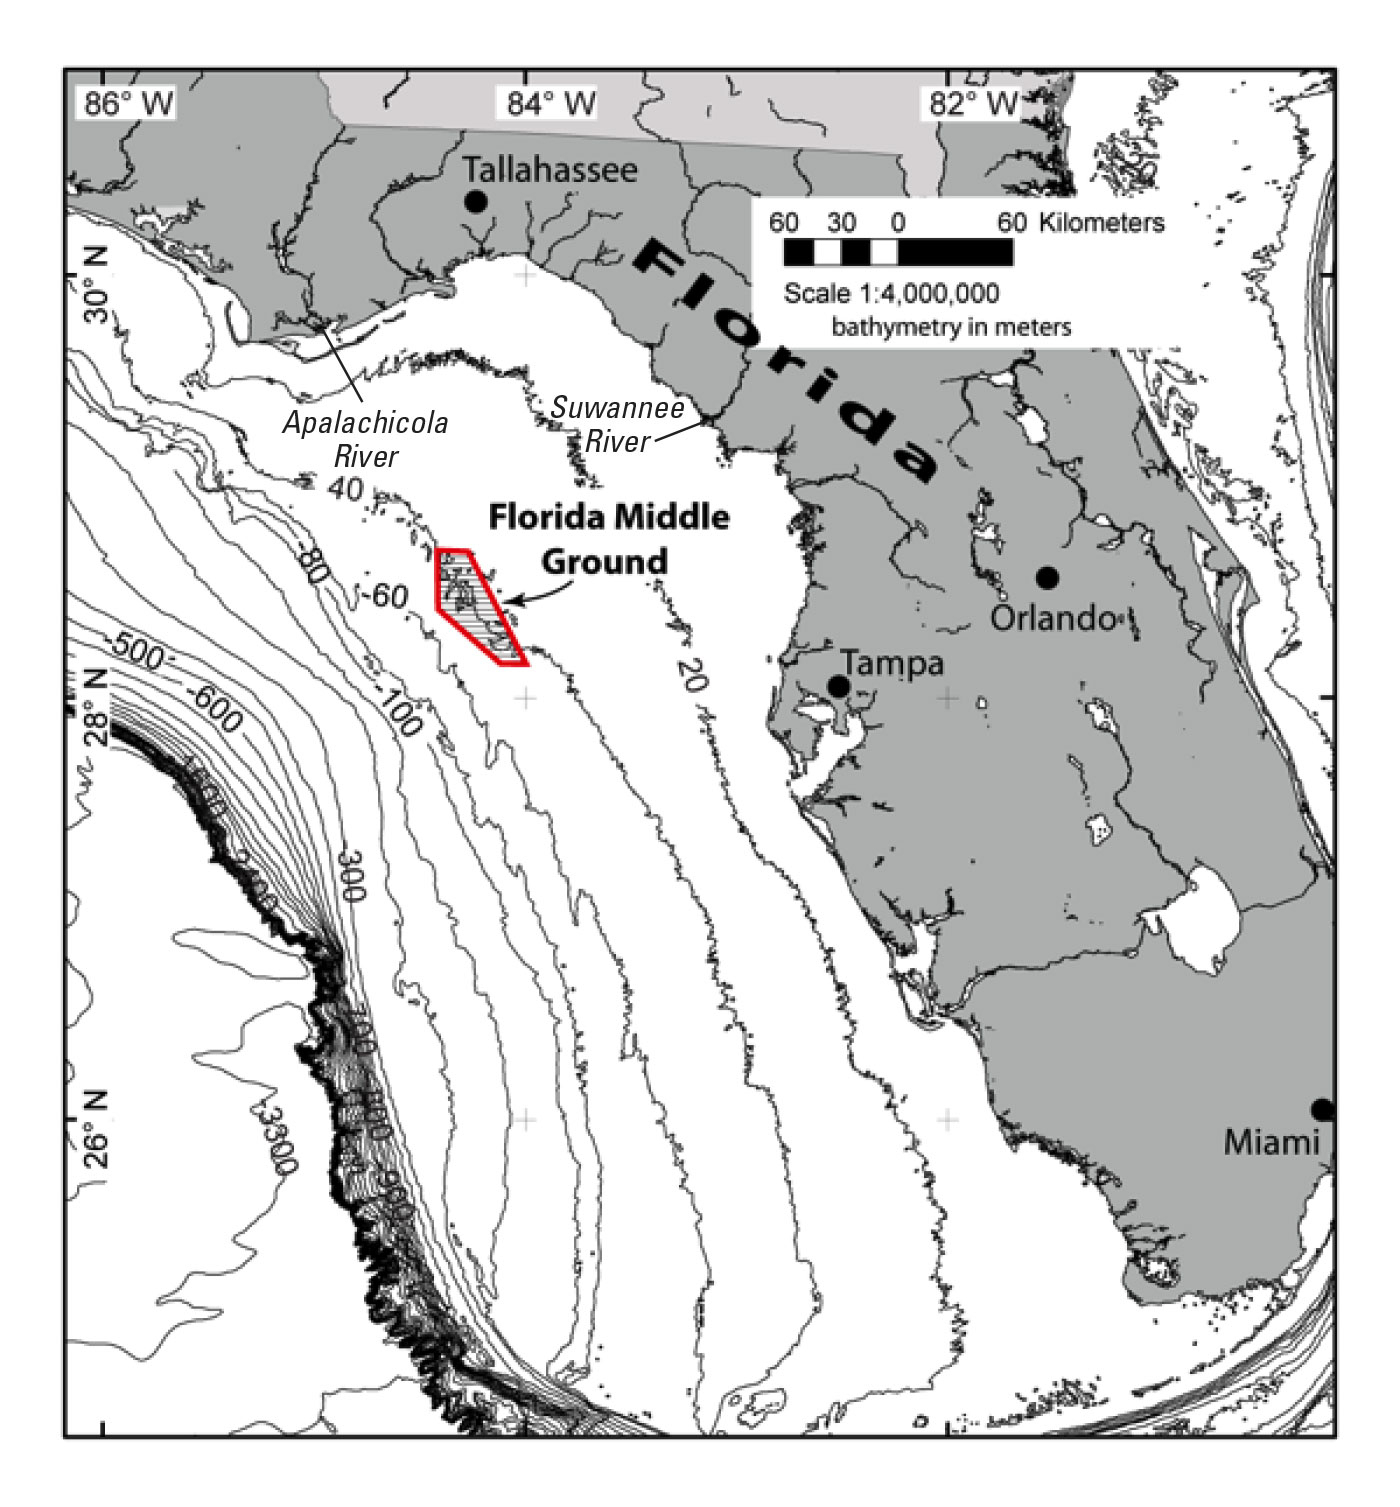 New Geologic Explanation For The Florida Middle Ground In The Gulf - Gulf Of Mexico Map Florida